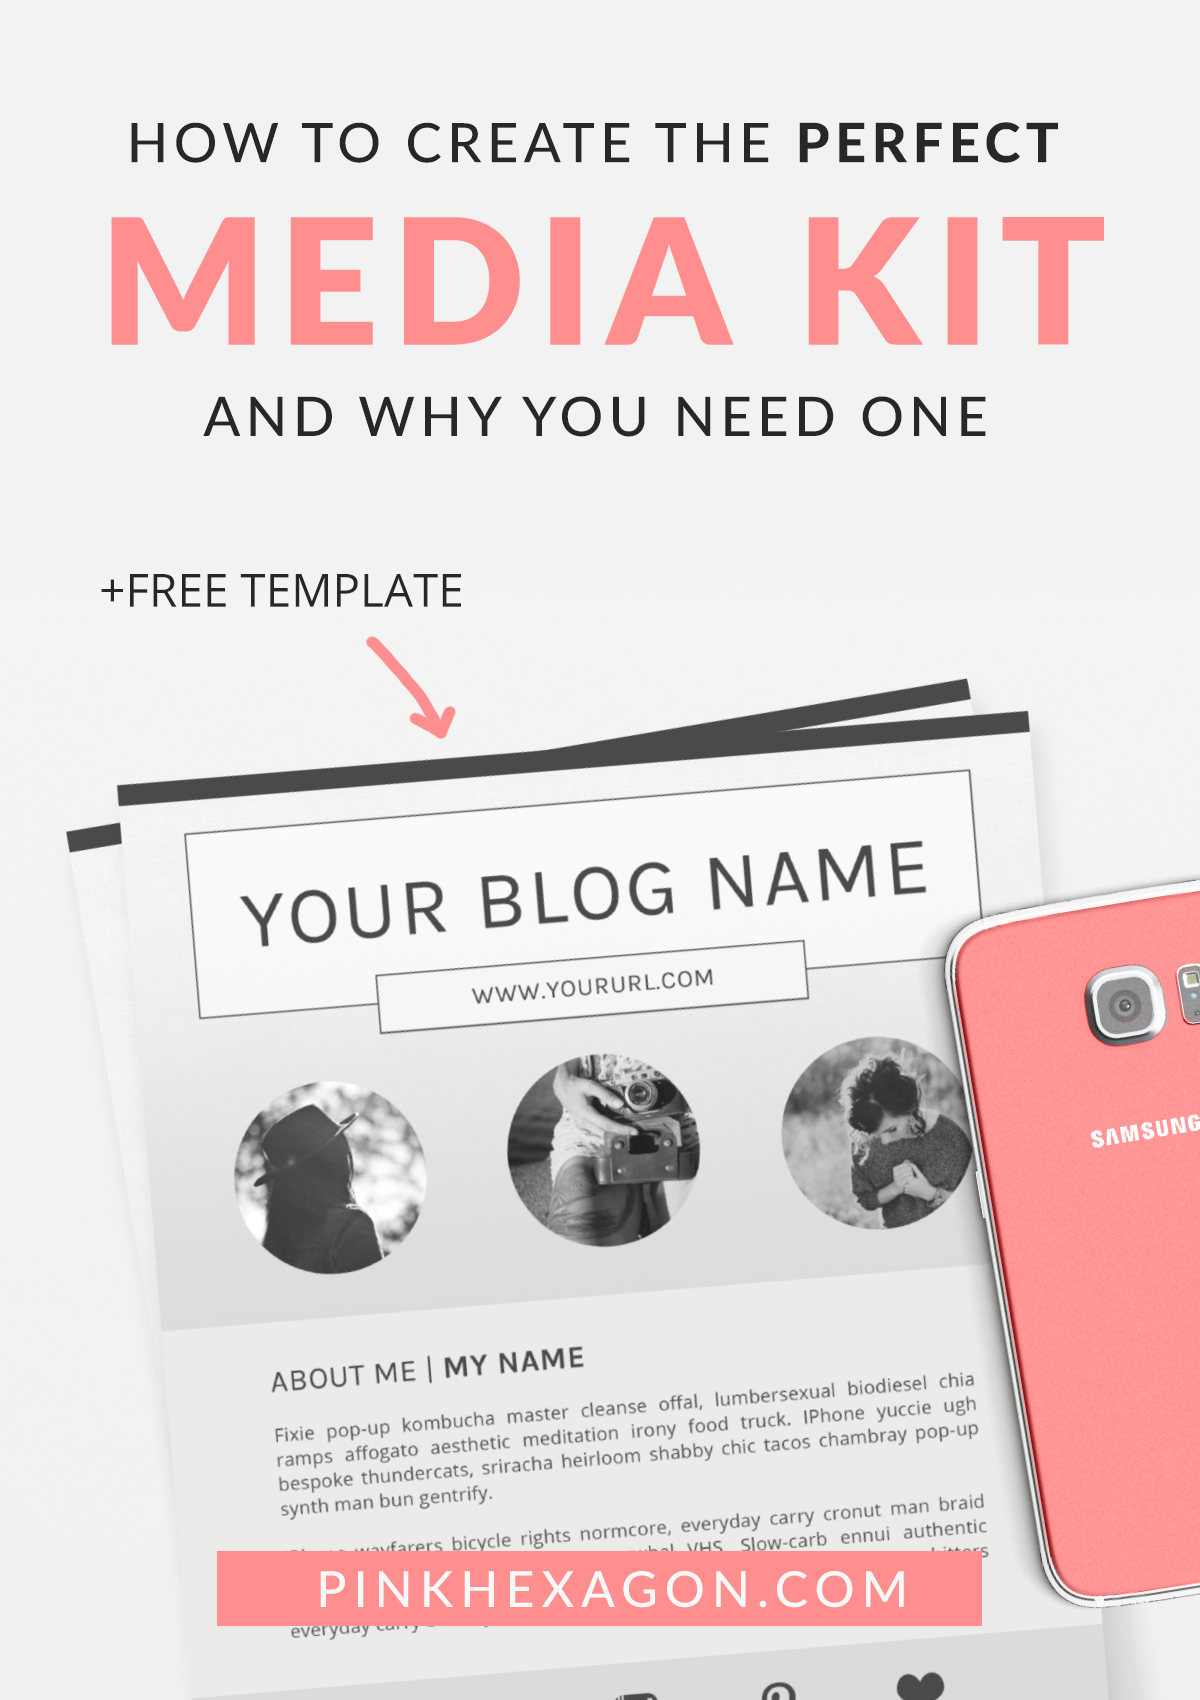 How and why to create a media kit for your blog free template how to create the perfect media kit and why you need one pronofoot35fo Images